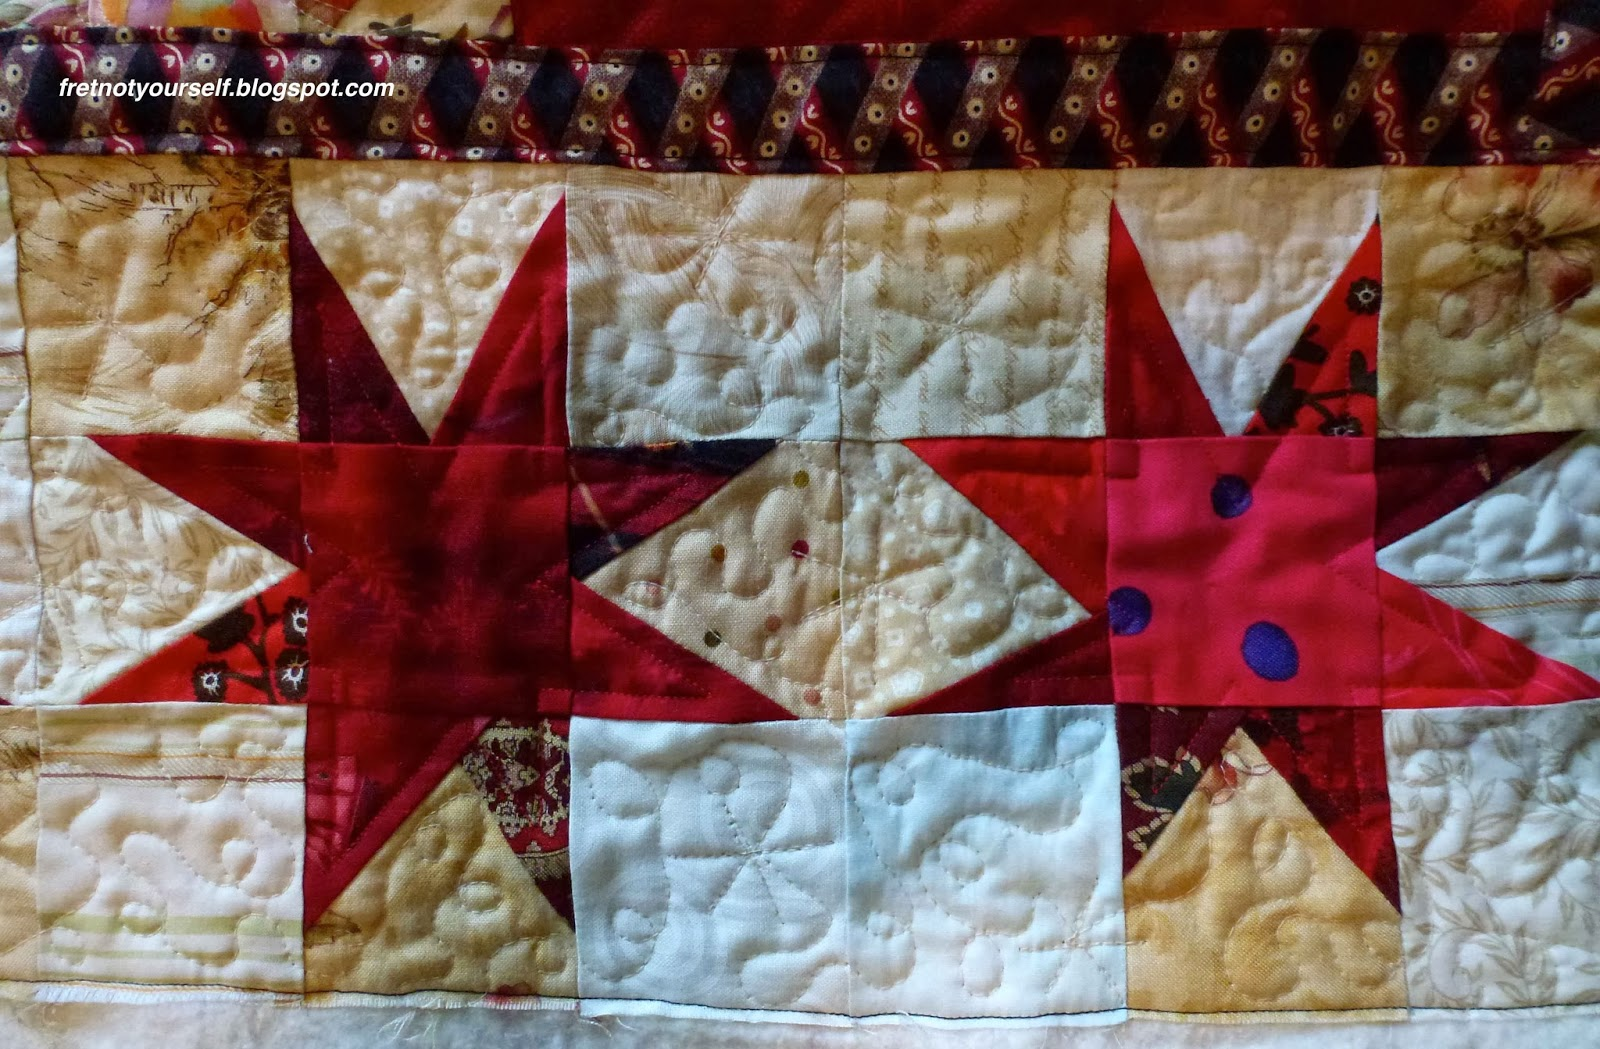 Free motion quilting starlights and loops in the border complements the variable stars.